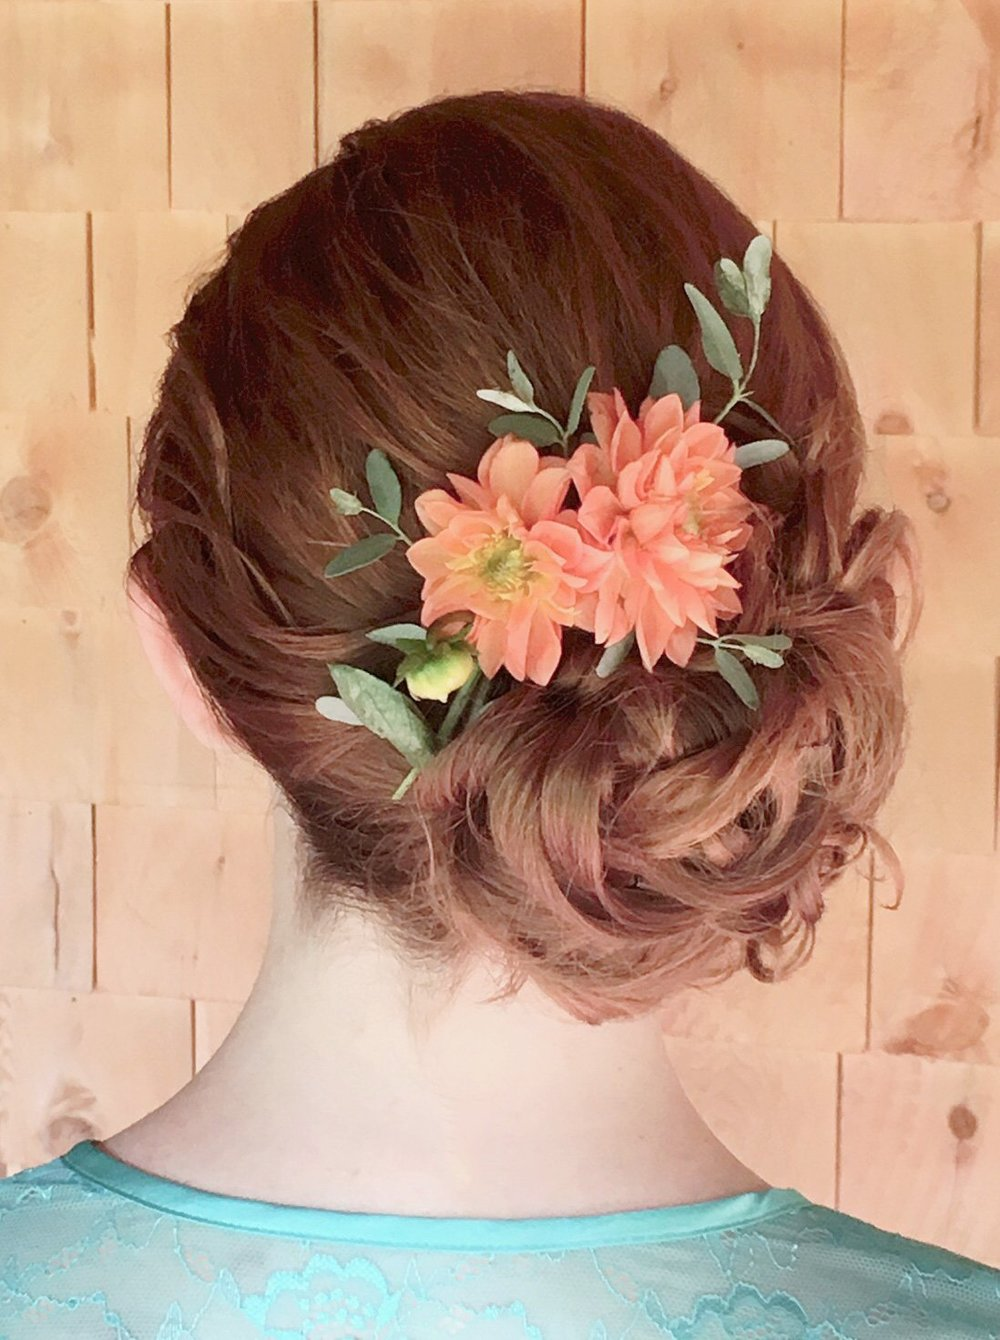 Flower in updo red hair by Lari Manz